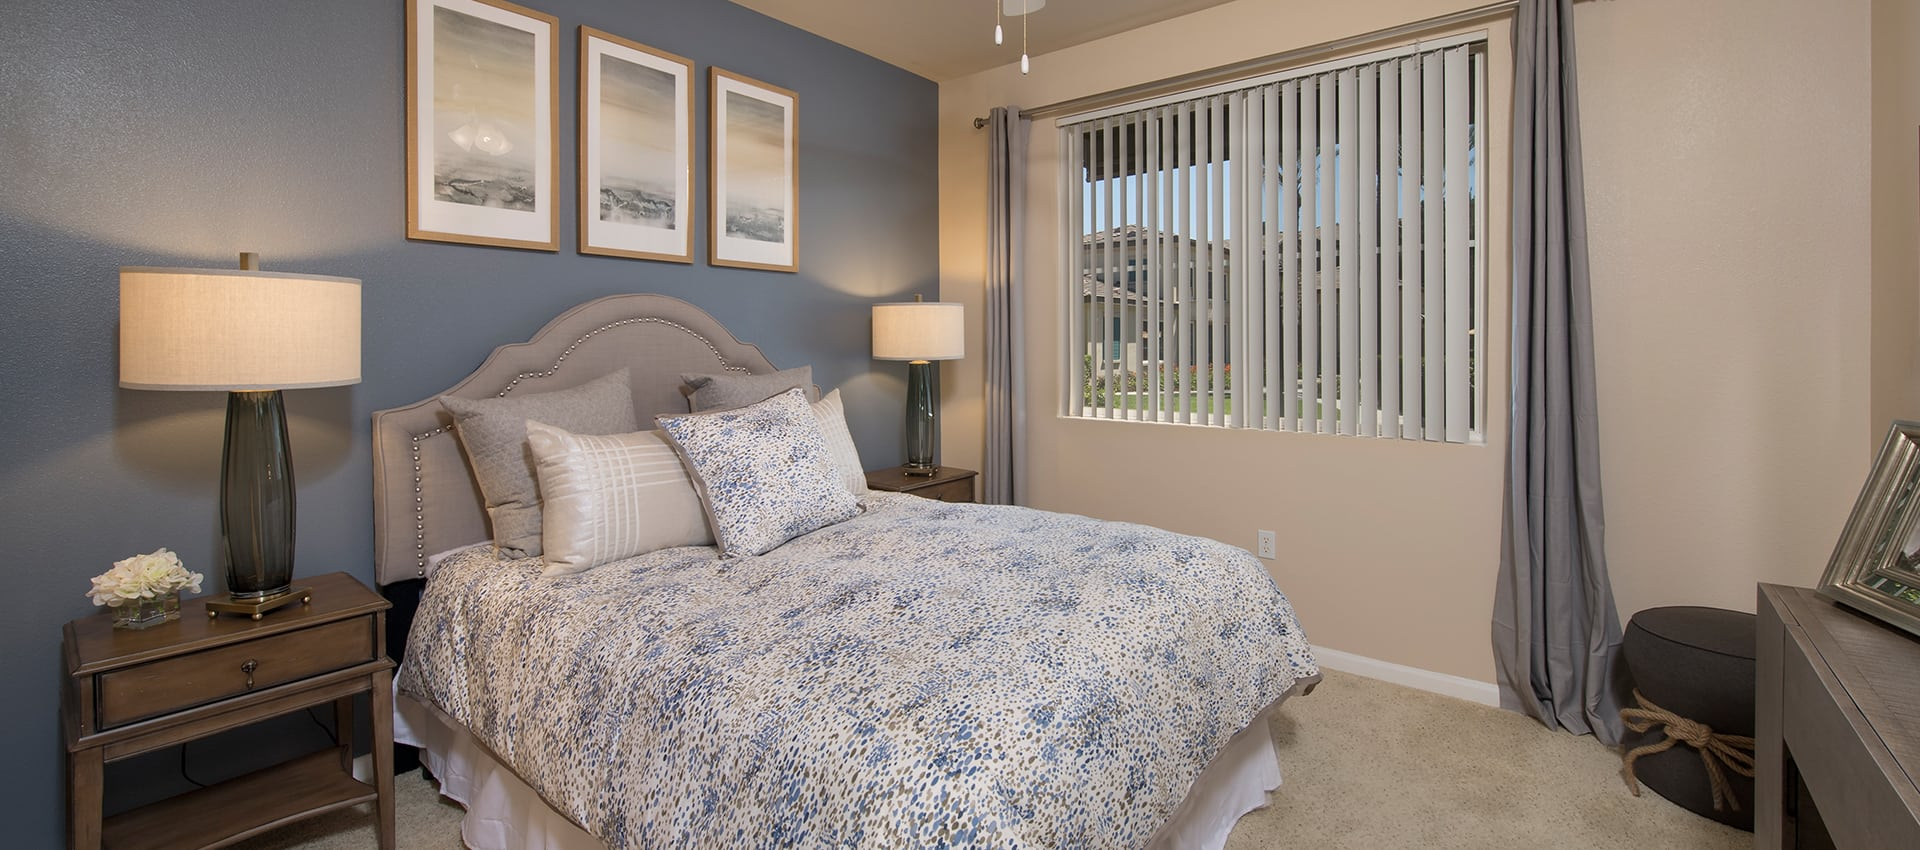 Model bedroom featuring bed at Esplanade Apartment Homes in Riverside, California